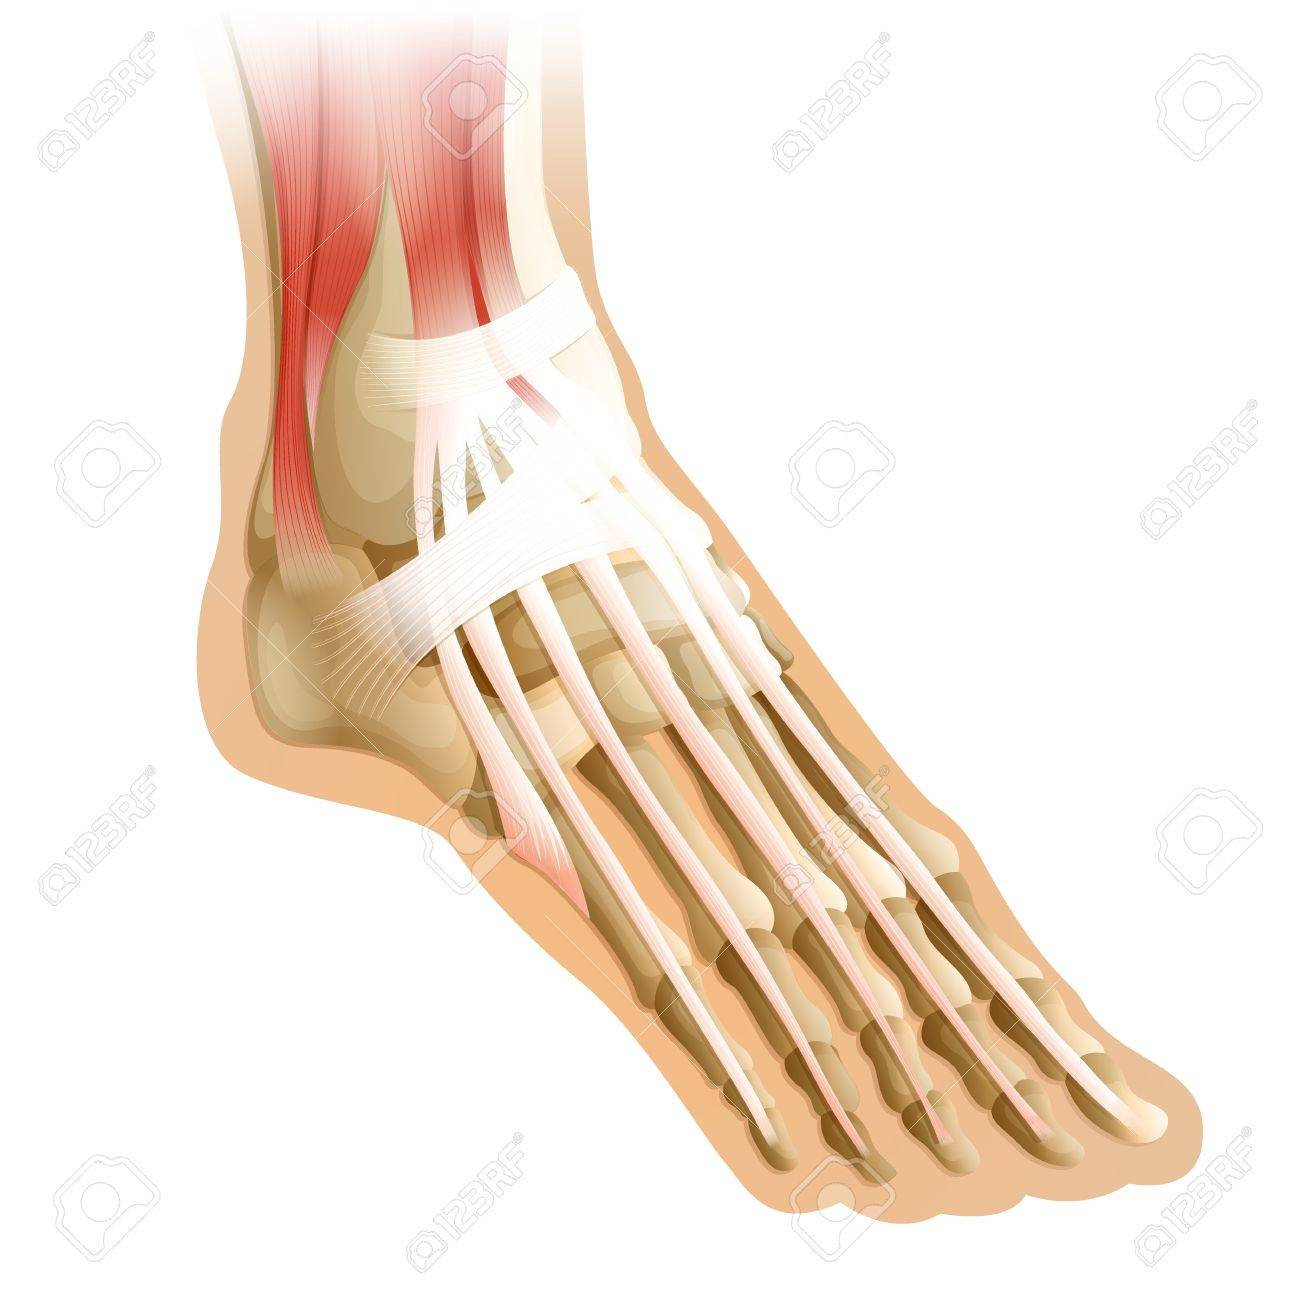 Diagram Of A Human Foot With Connective Tissue Royalty Free Cliparts ...